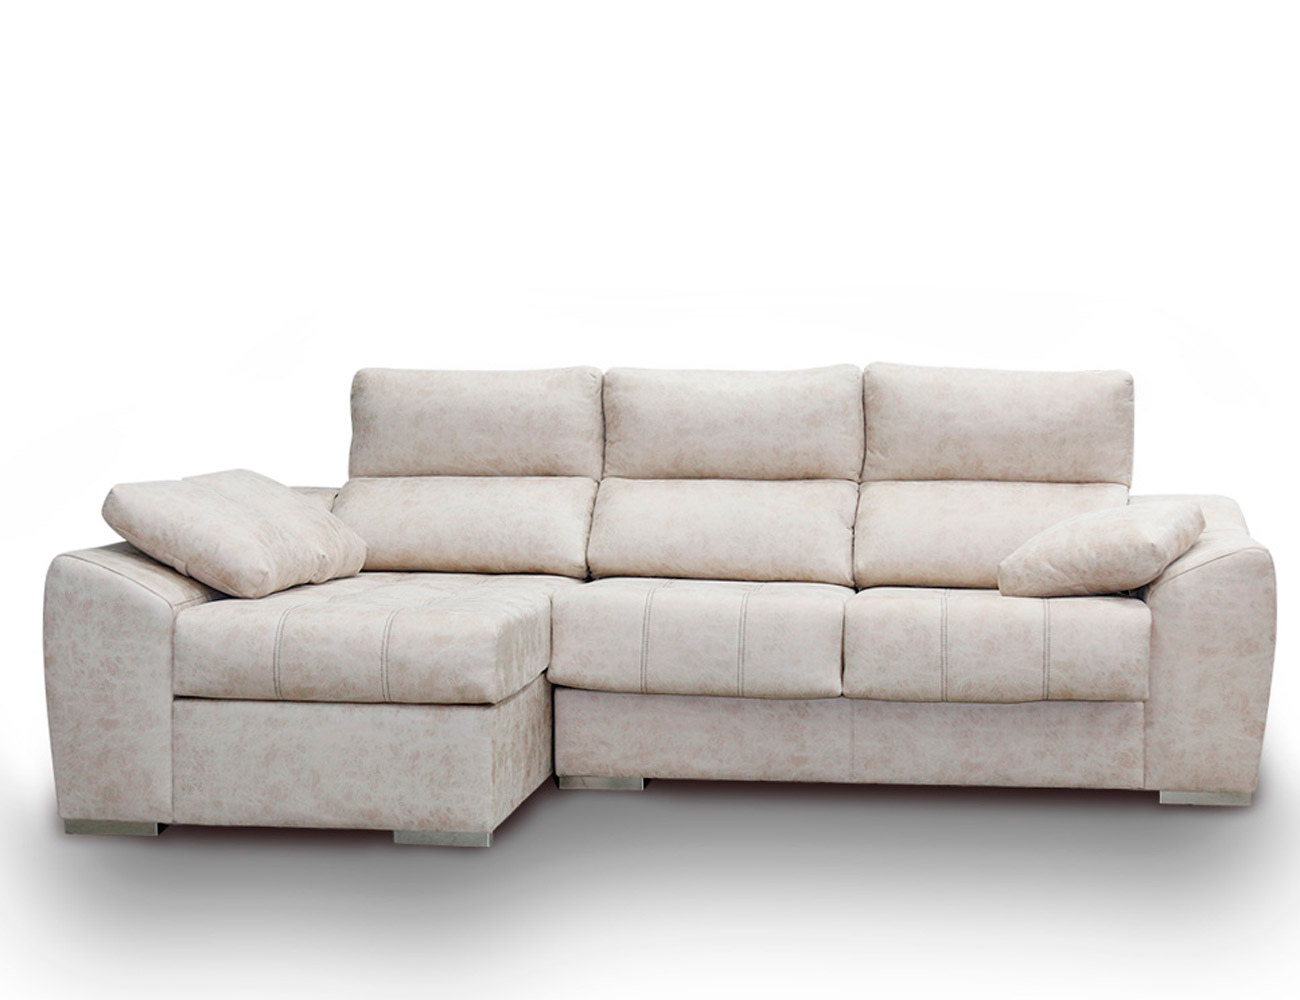 Sofa chaiselongue anti manchas beig blanco22